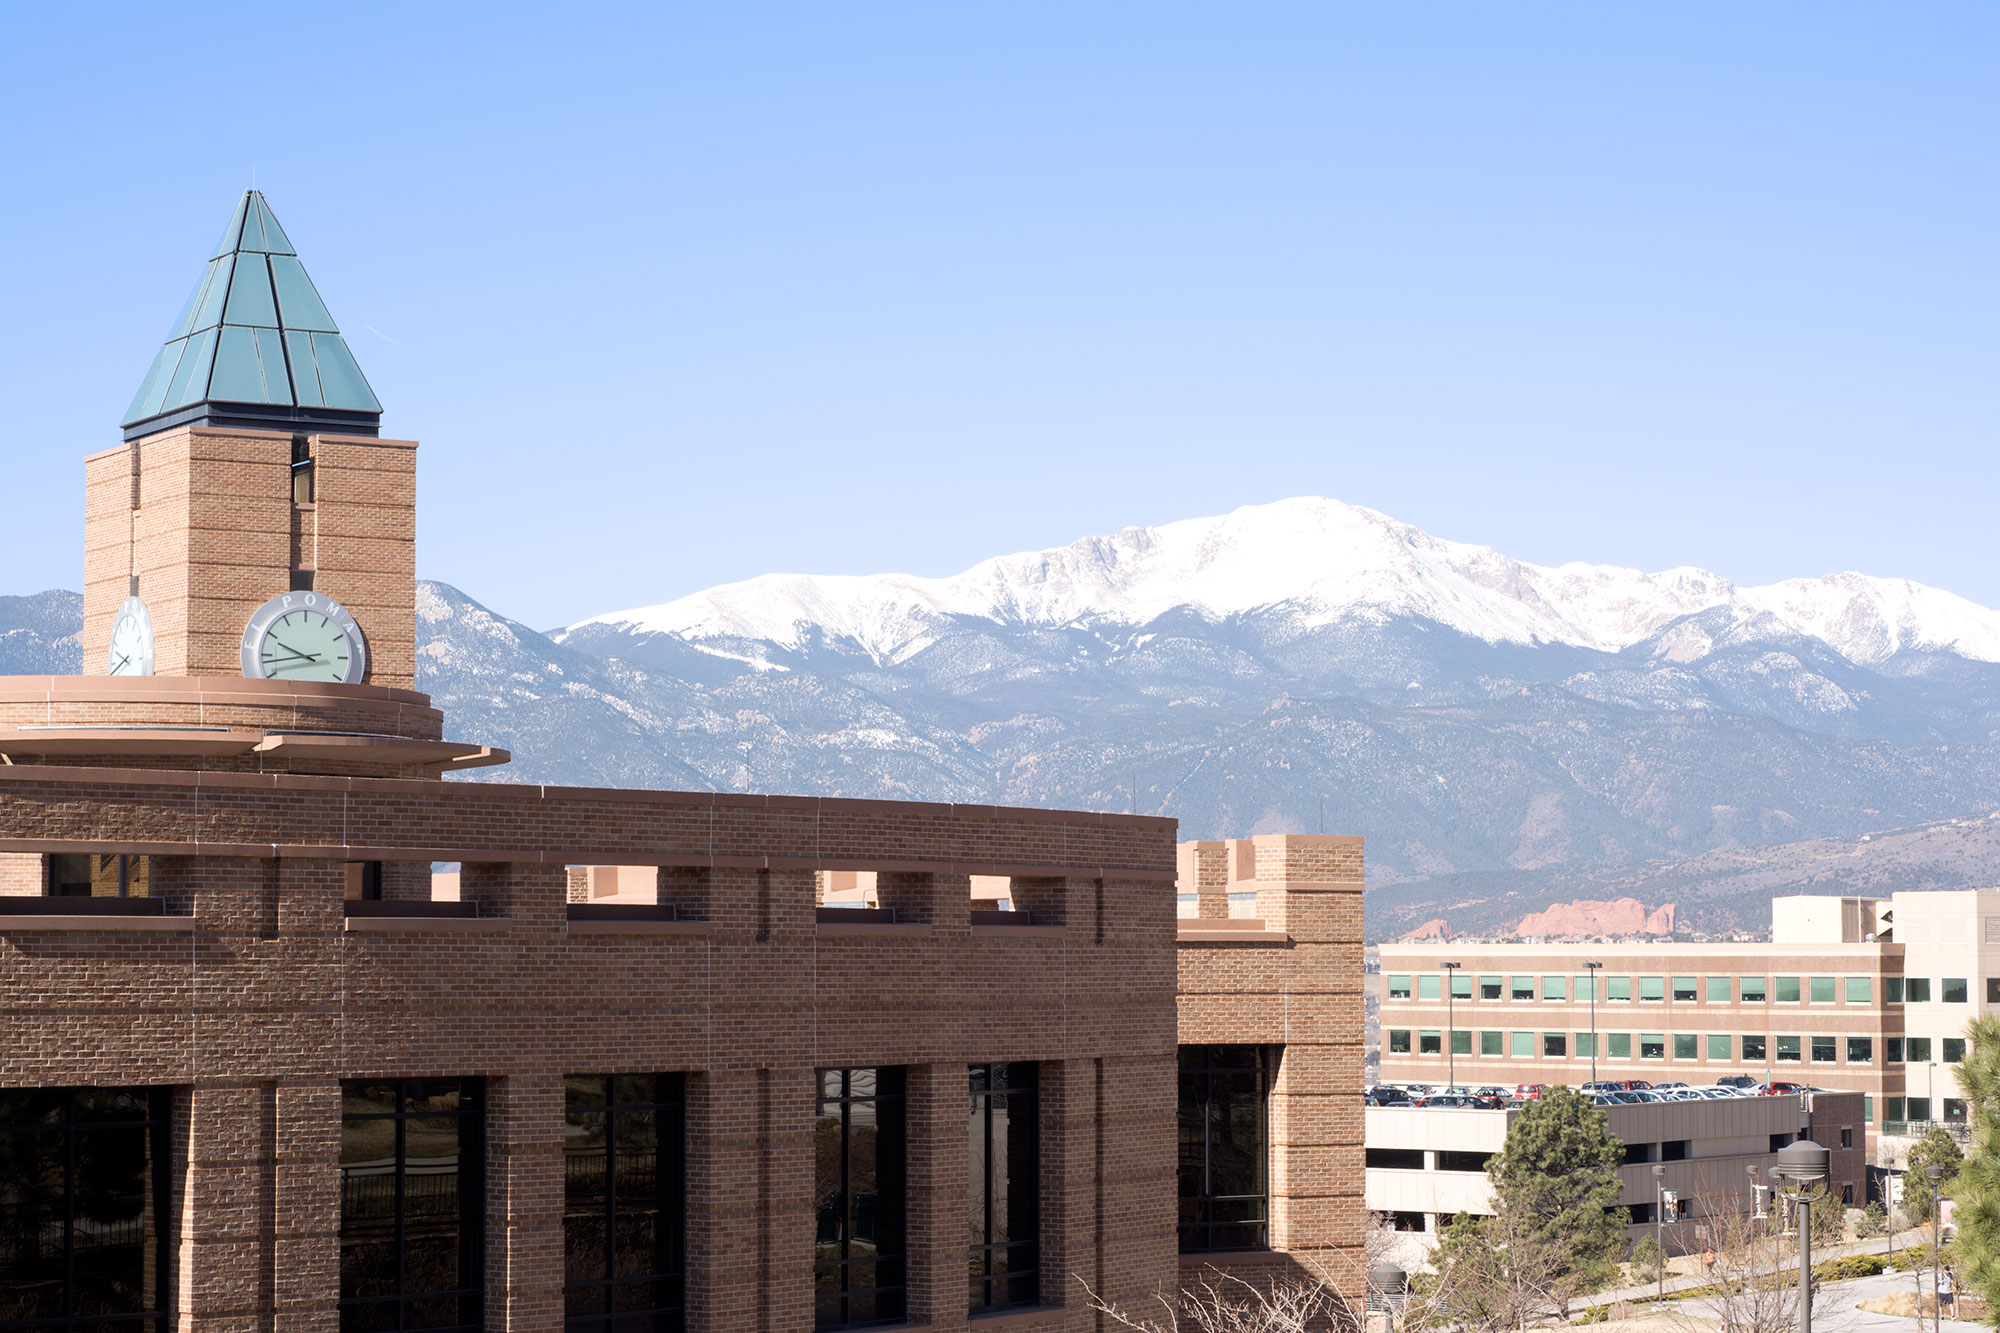 El Pomar Center at UCCS in front of Pikes Peak